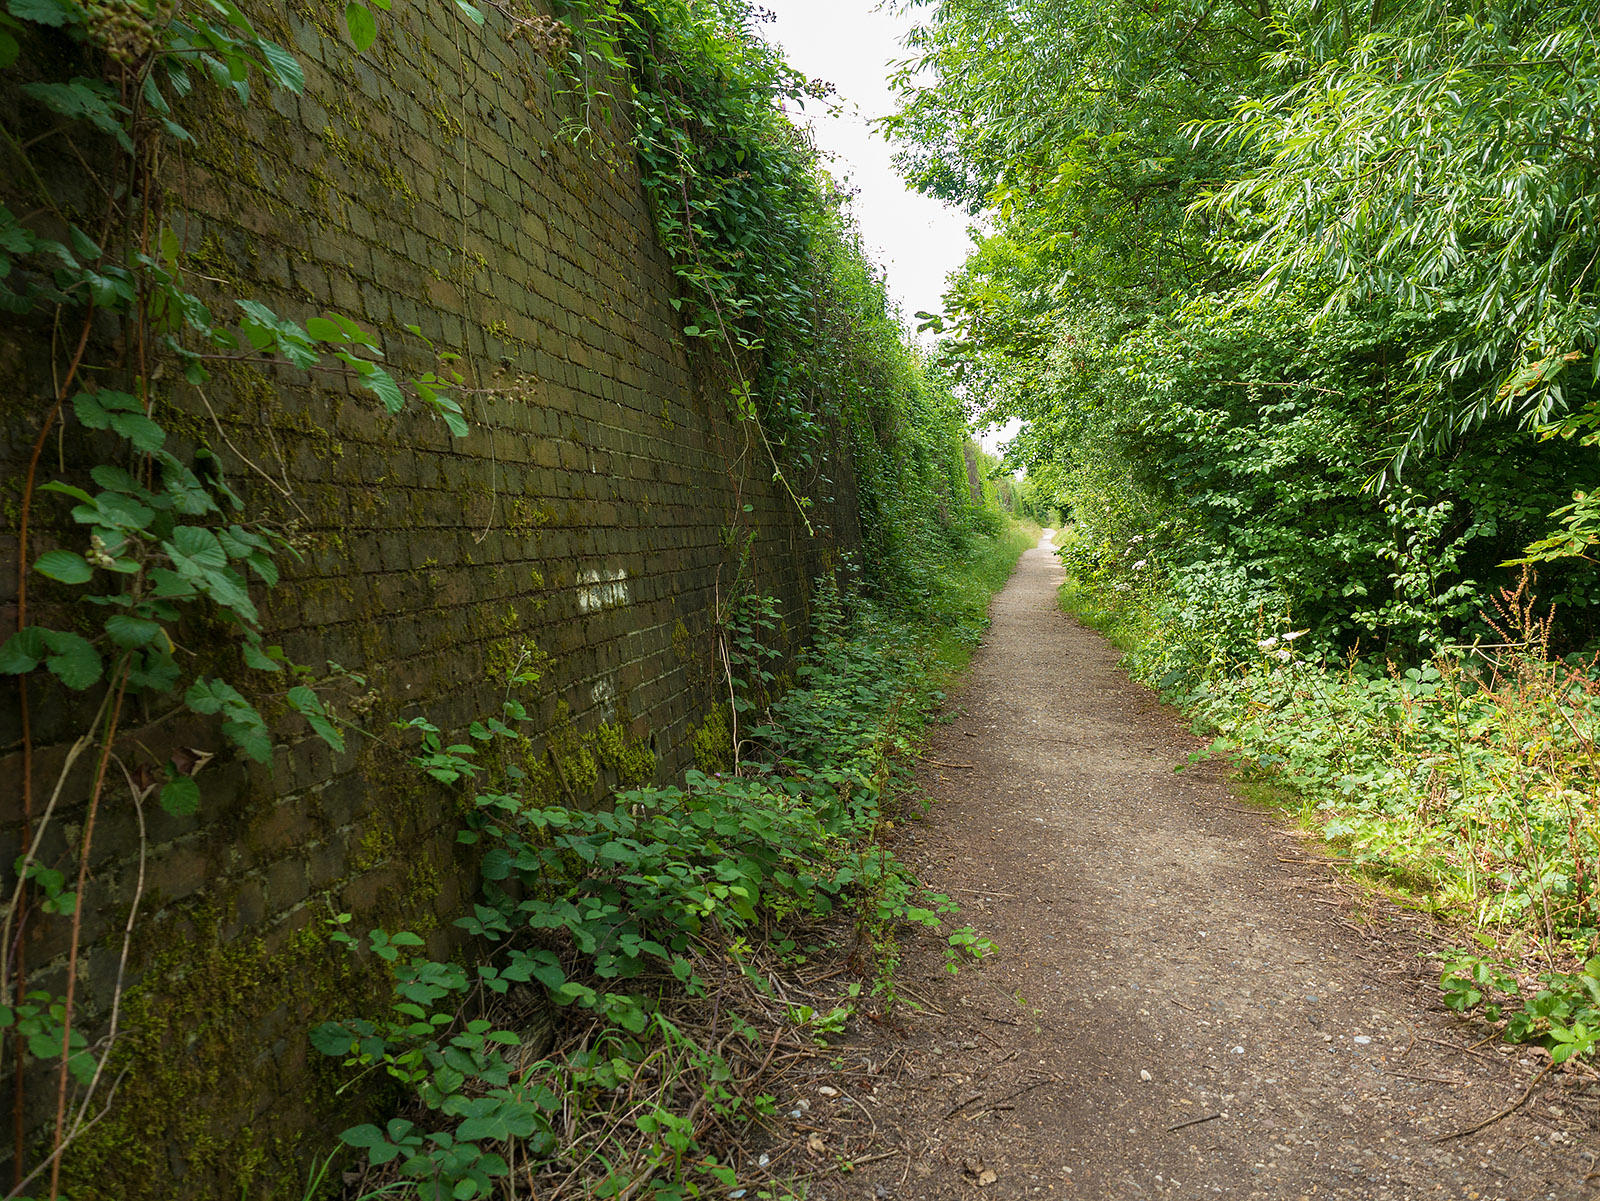 Beside the mainline railway for a while